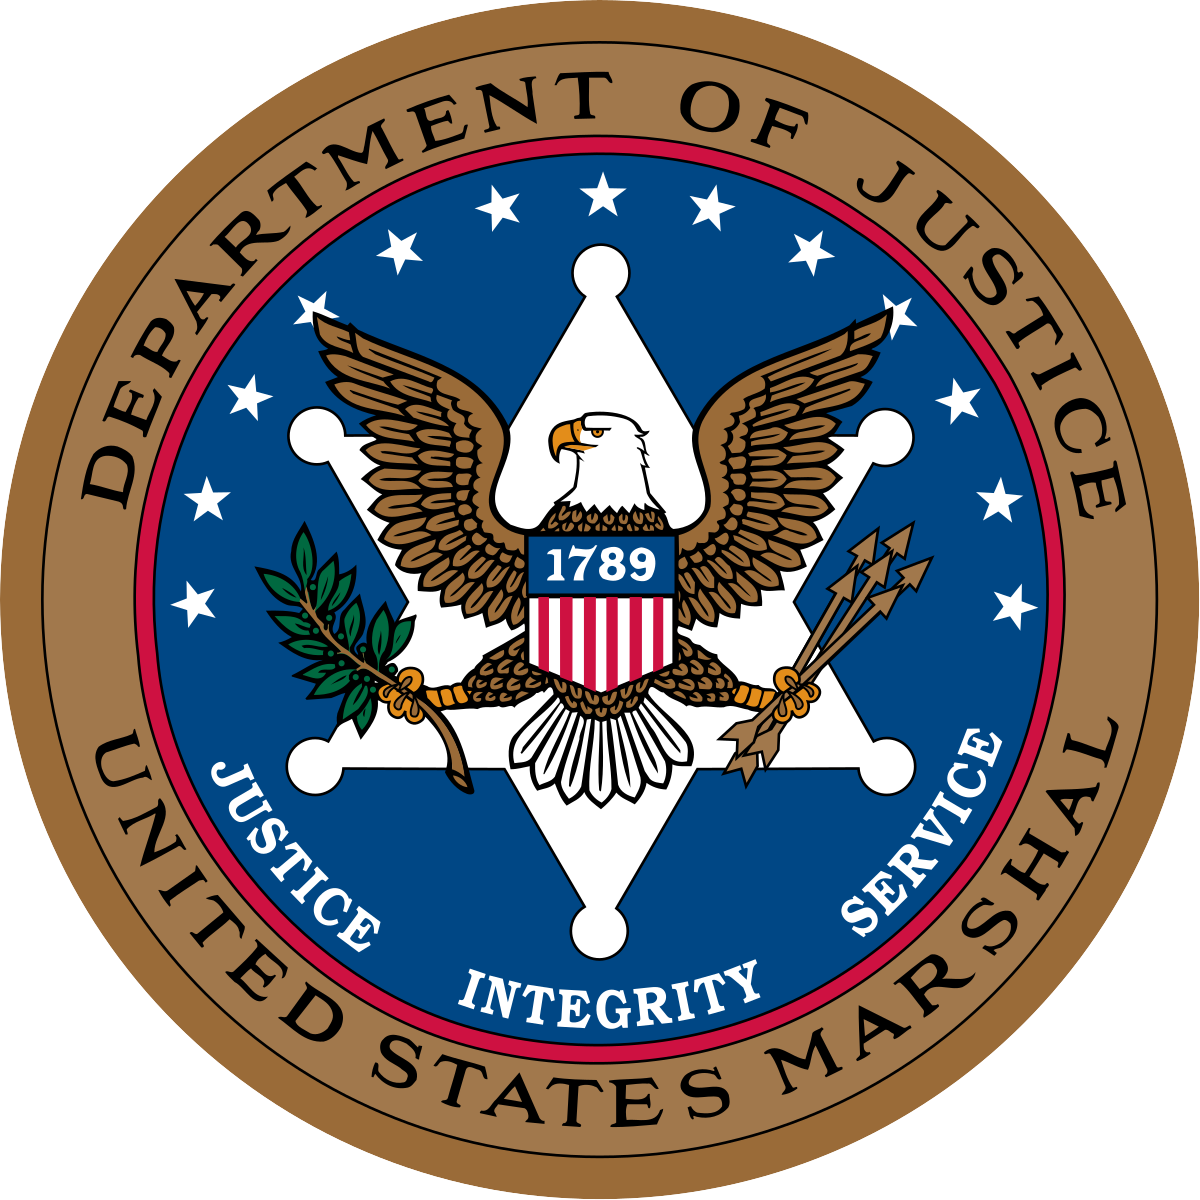 PPE department of justice logo